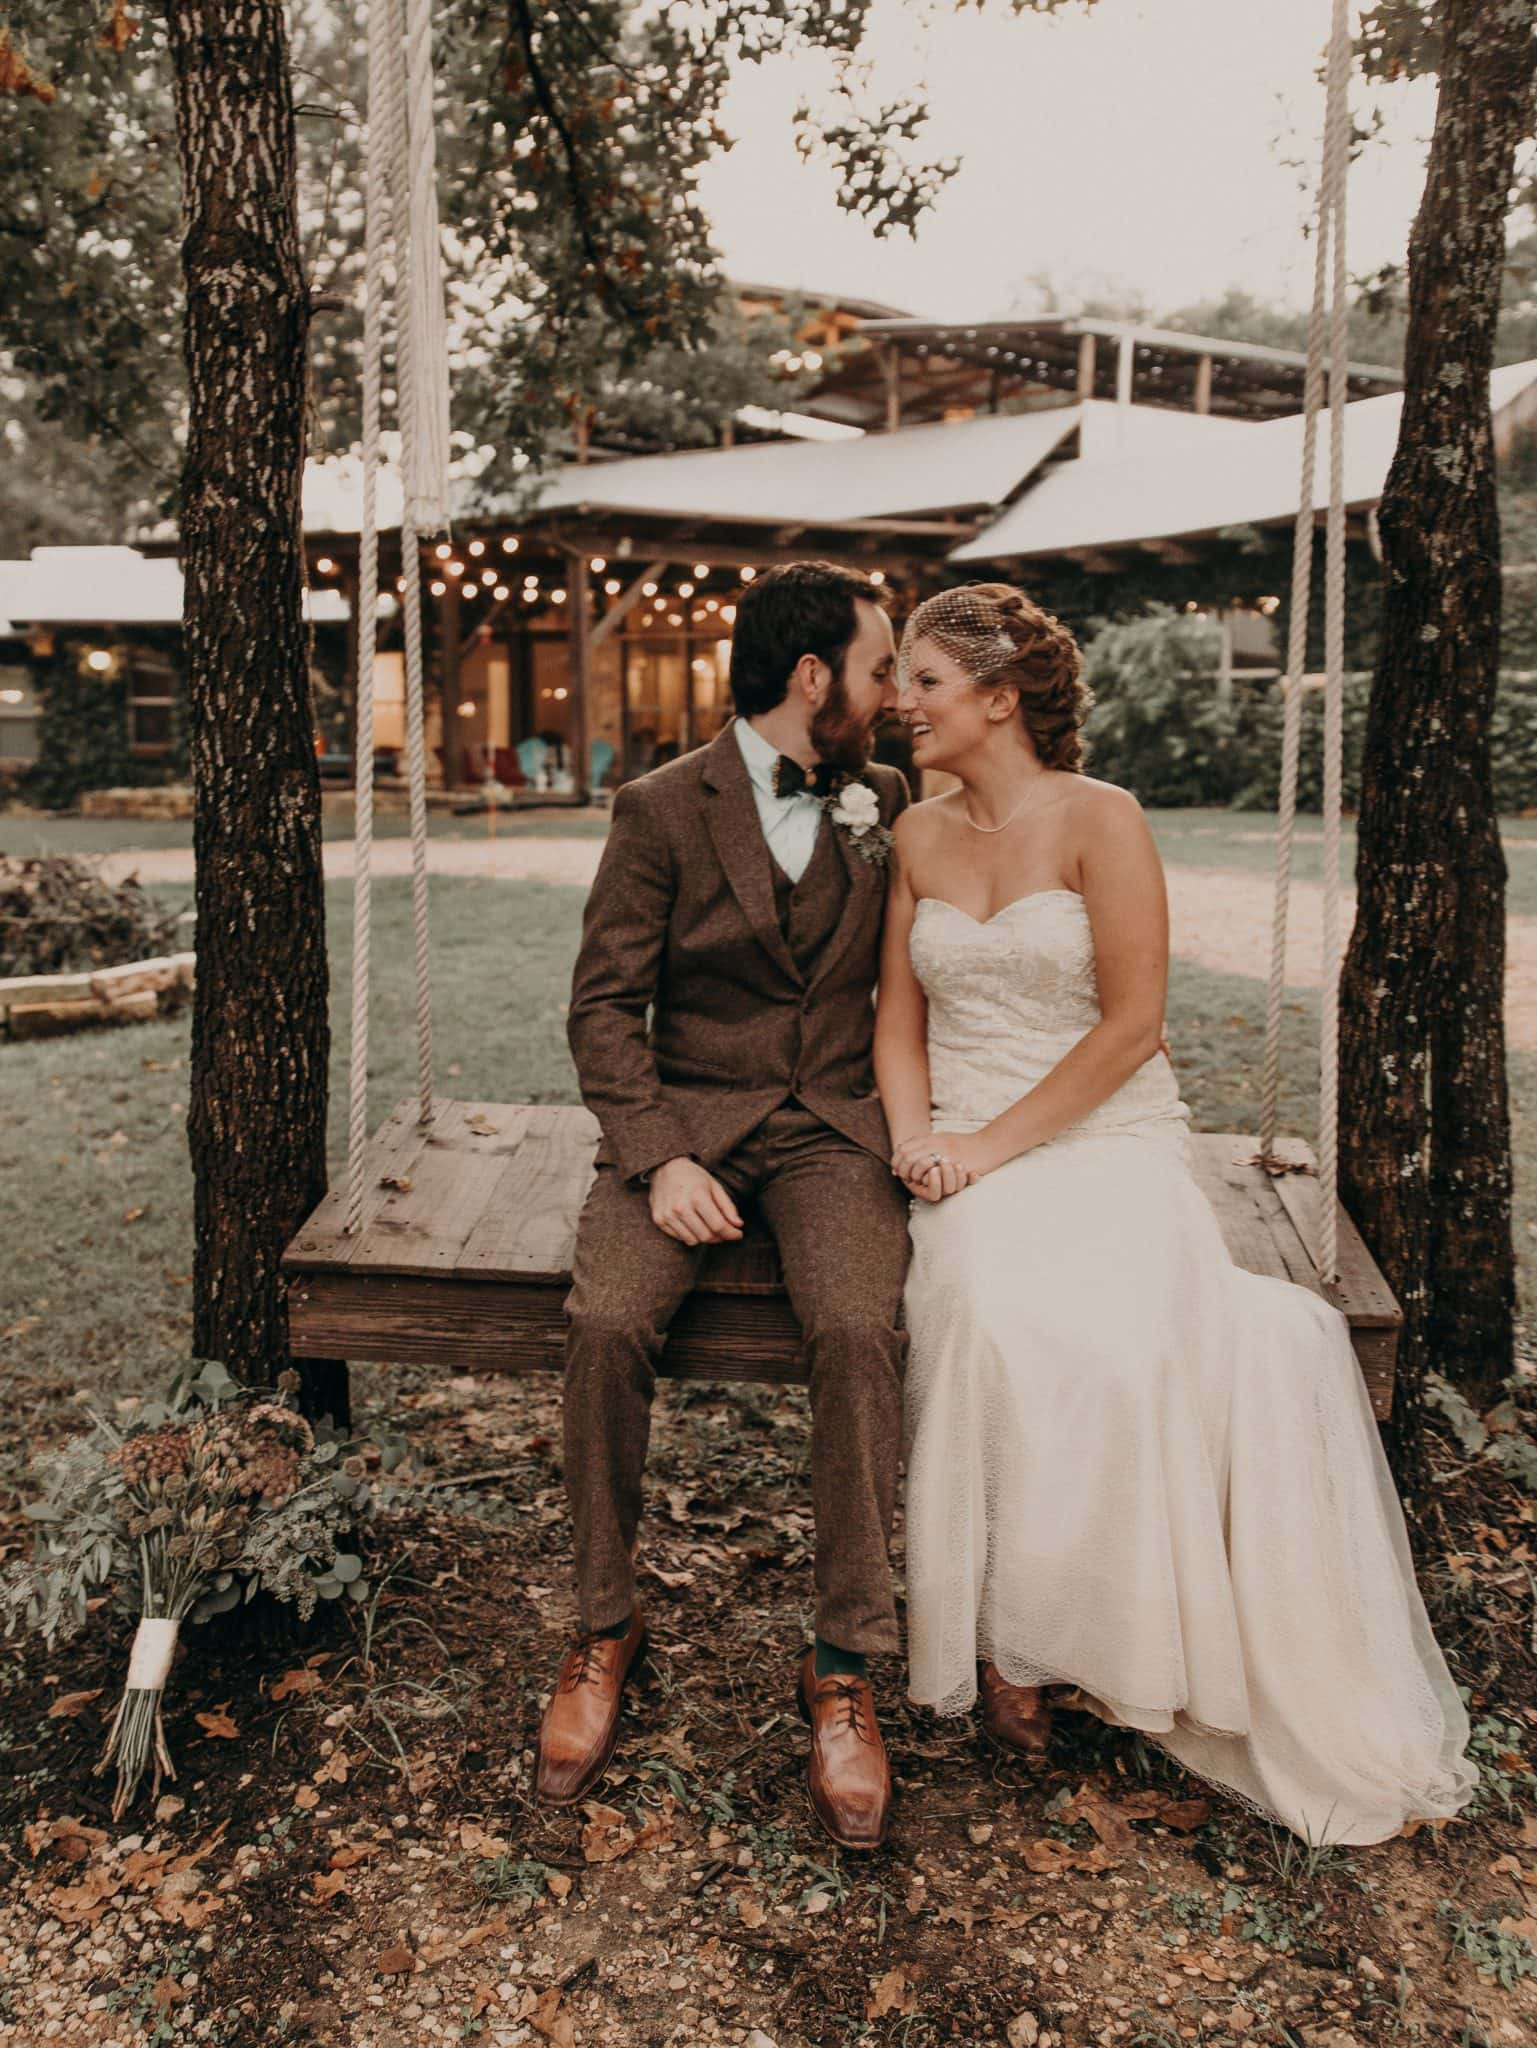 8 Wedding Planning Tips You May Not Have Heard Of